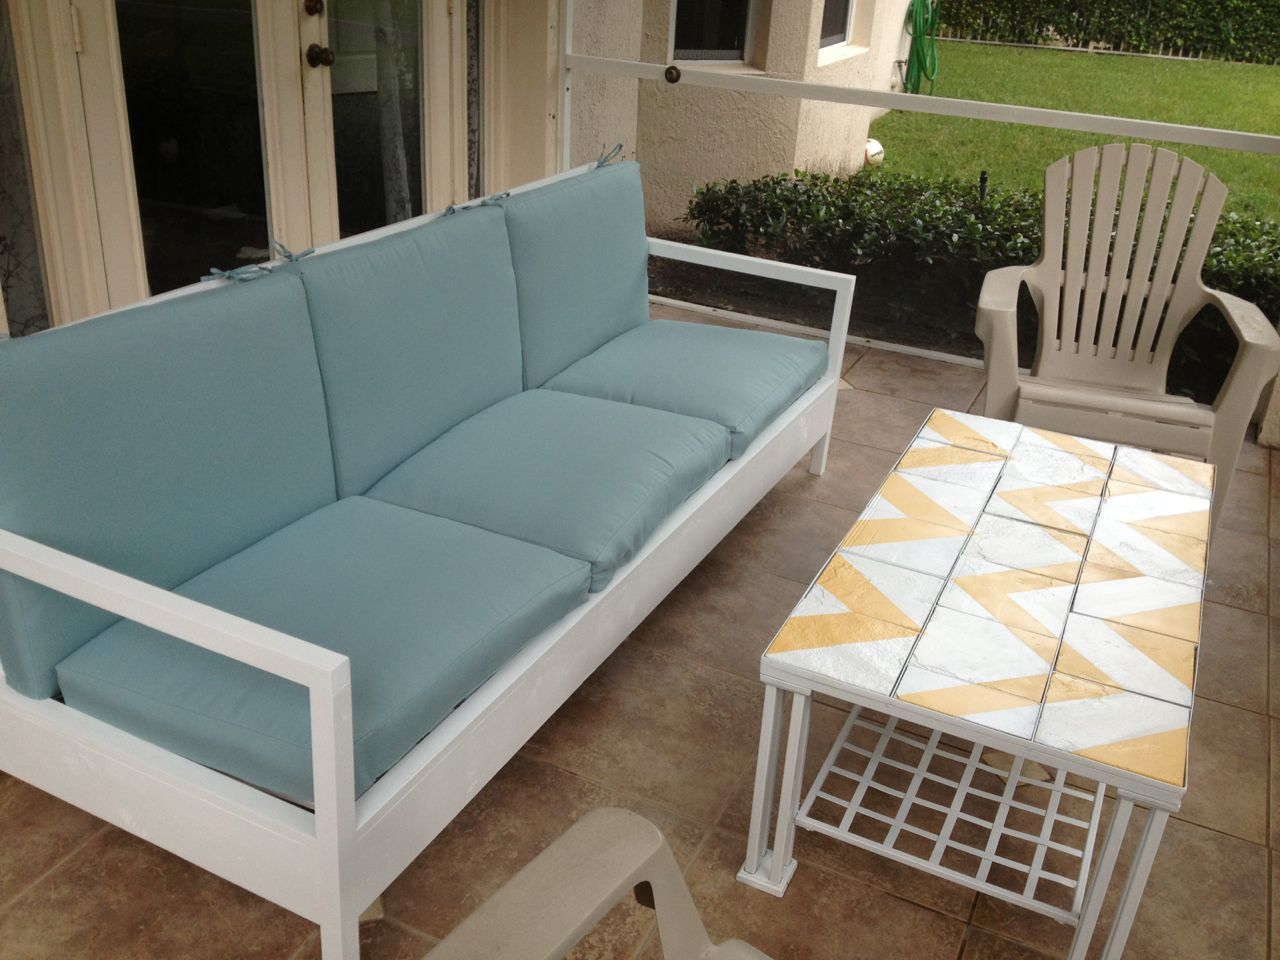 Ana White Simple White Patio Sofa Diy Projects Patio 400 x 300